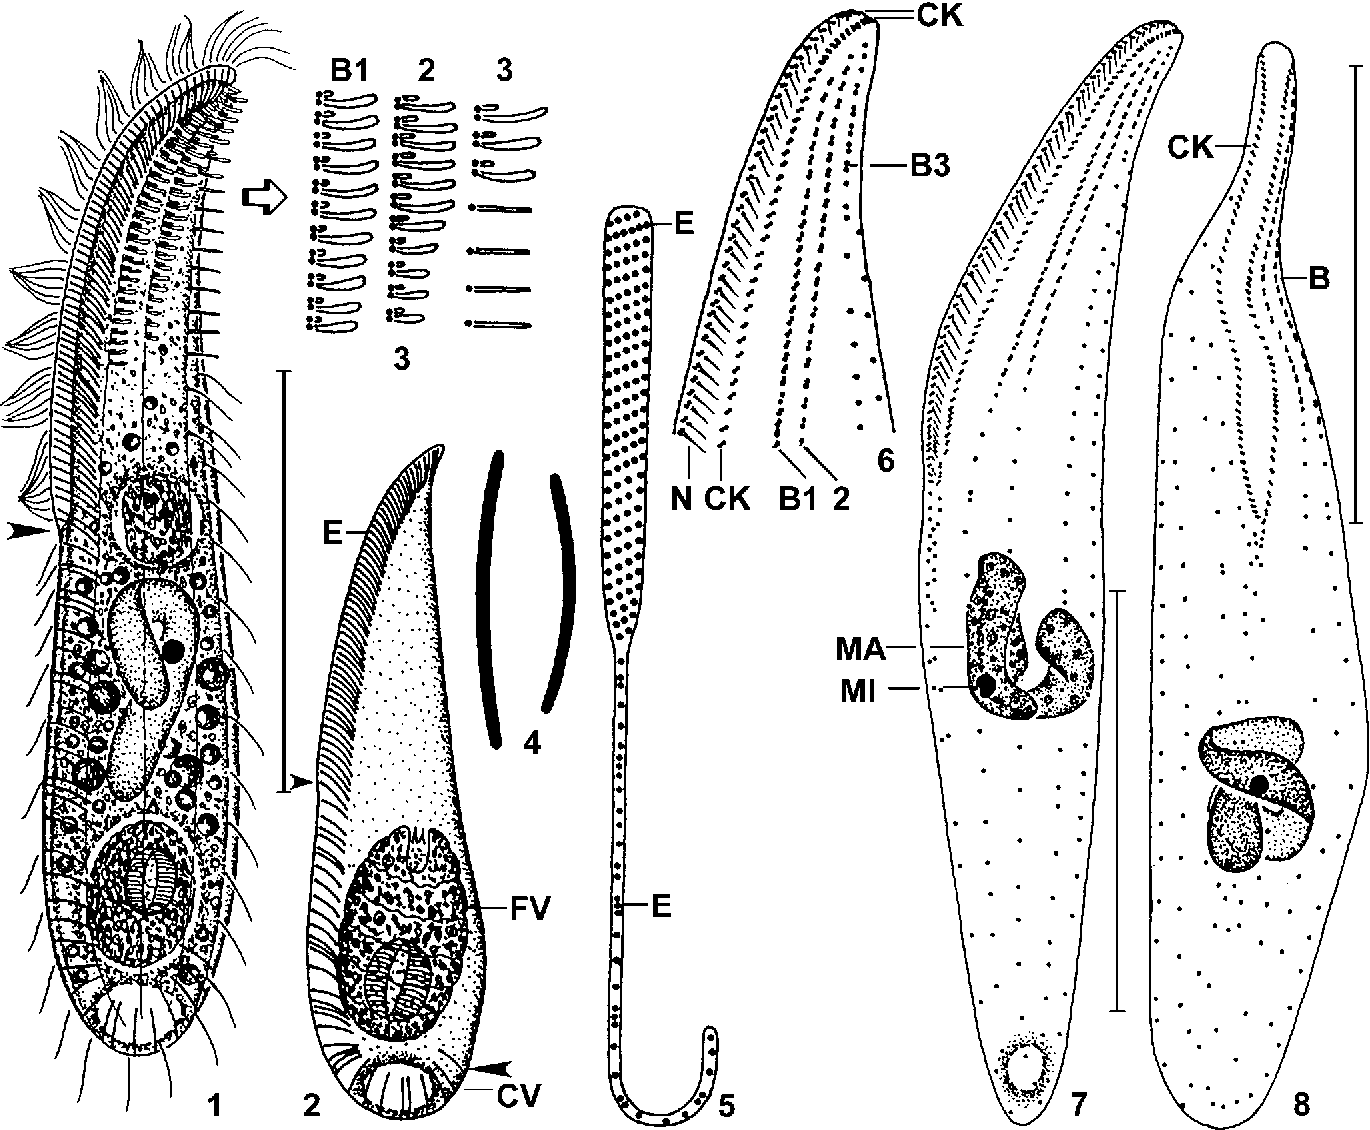 PDF] An expanded phylogeny of the Entodiniomorphida (Ciliophora ...